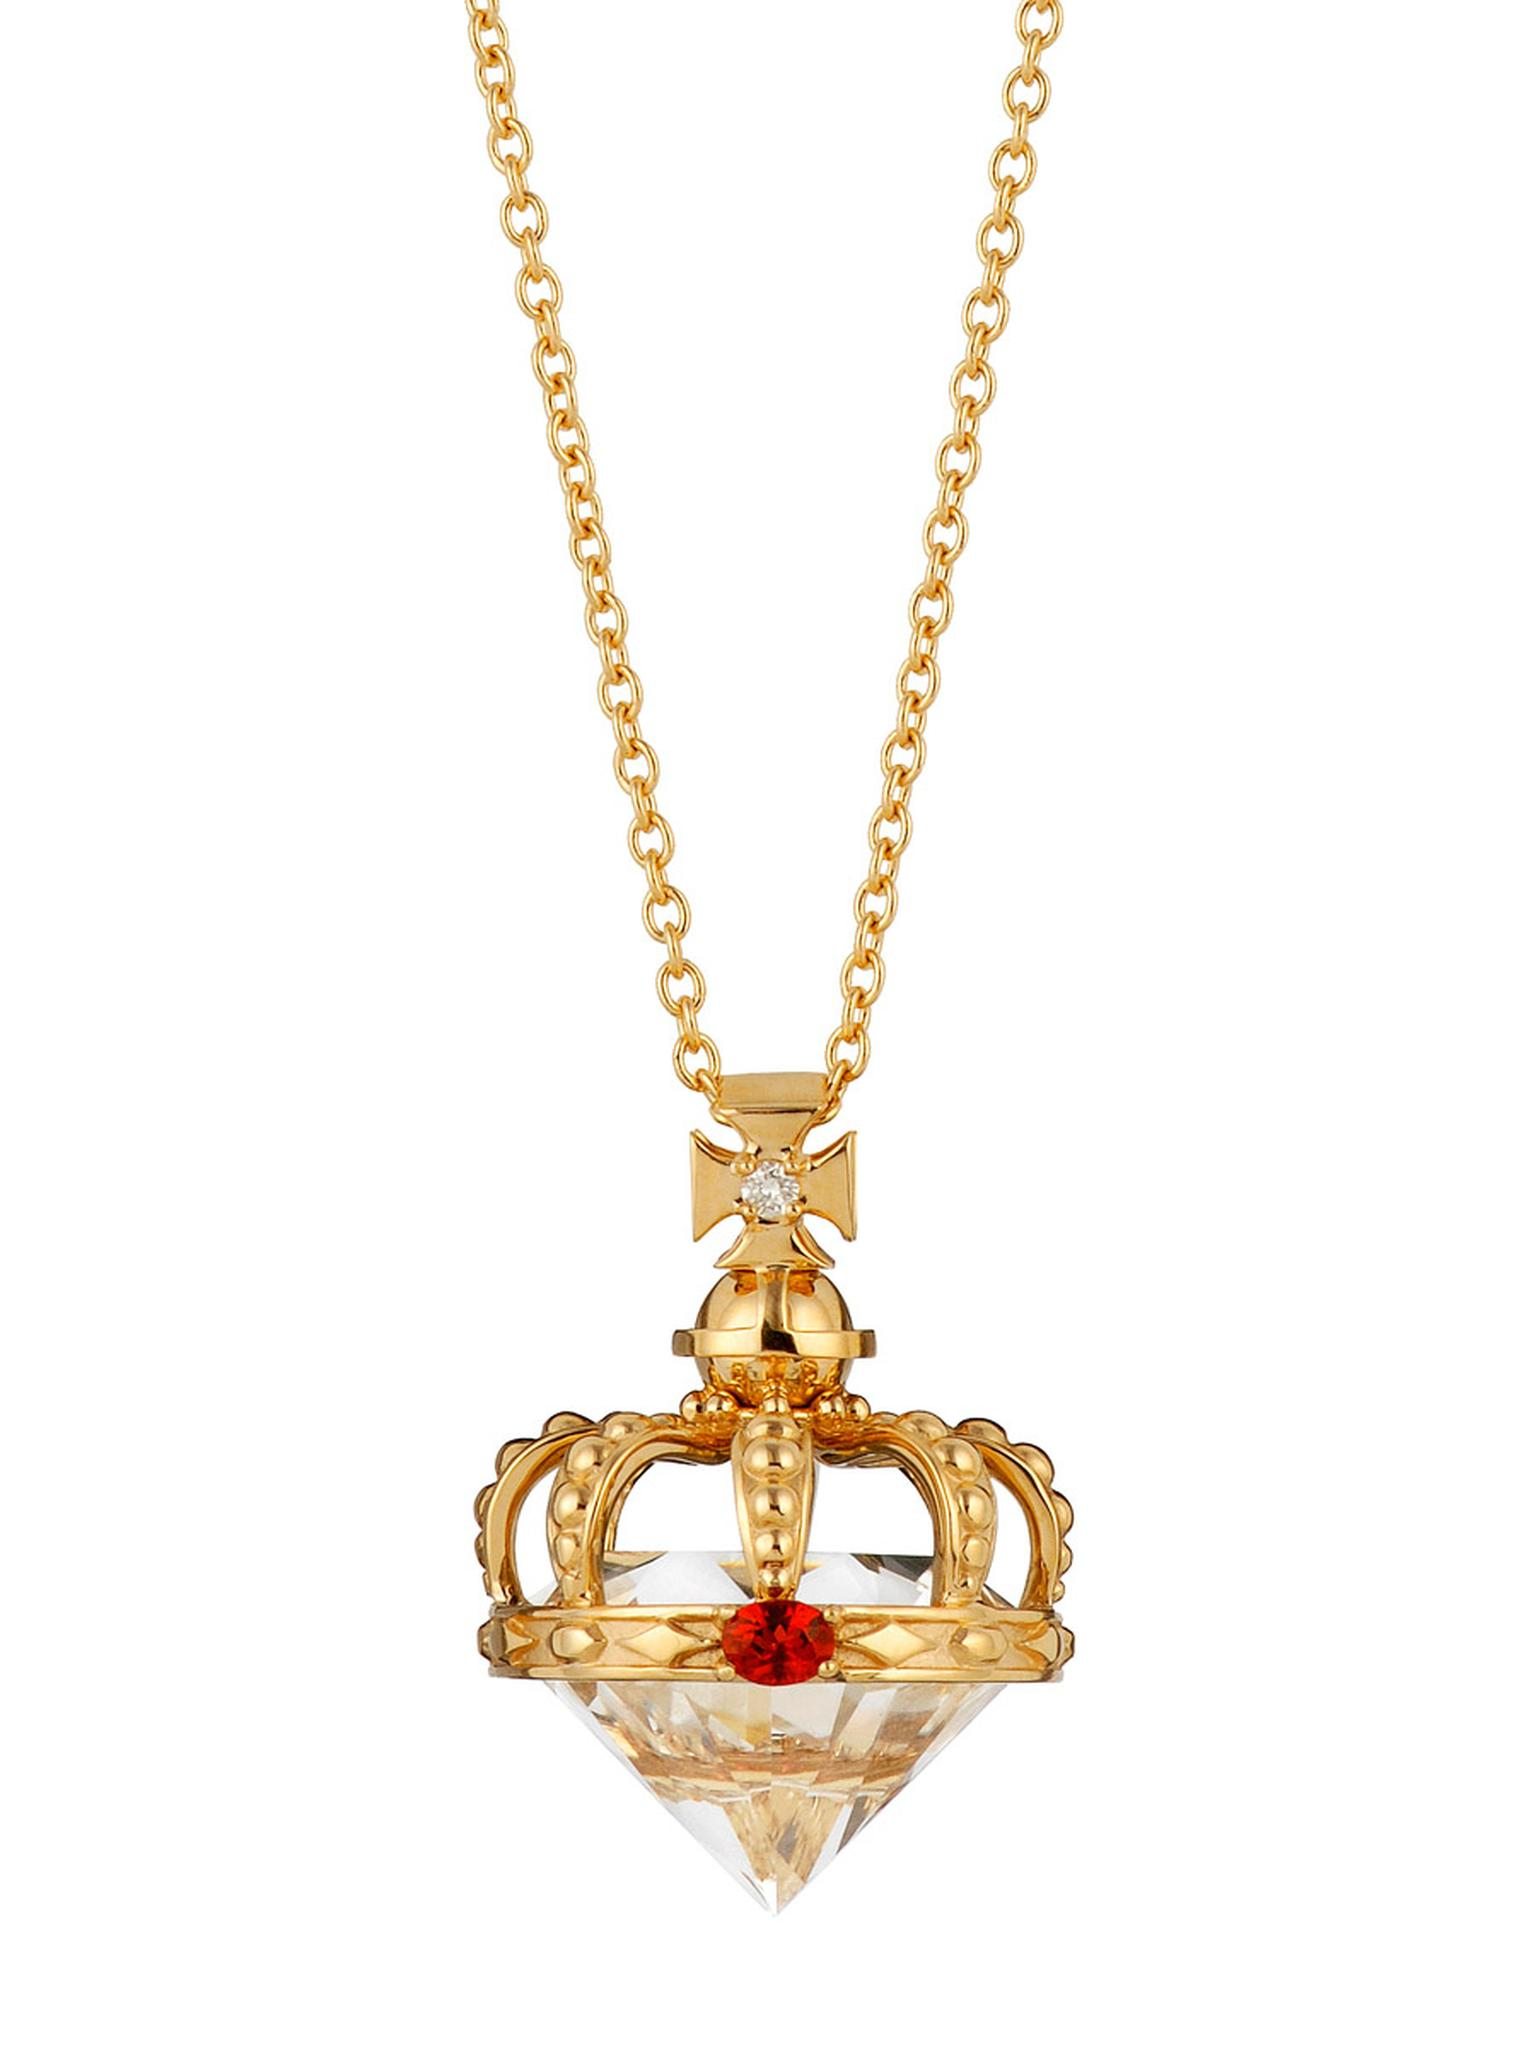 Stephen-Webster-Garrards-January-Jubilee-Pendant---Garnet